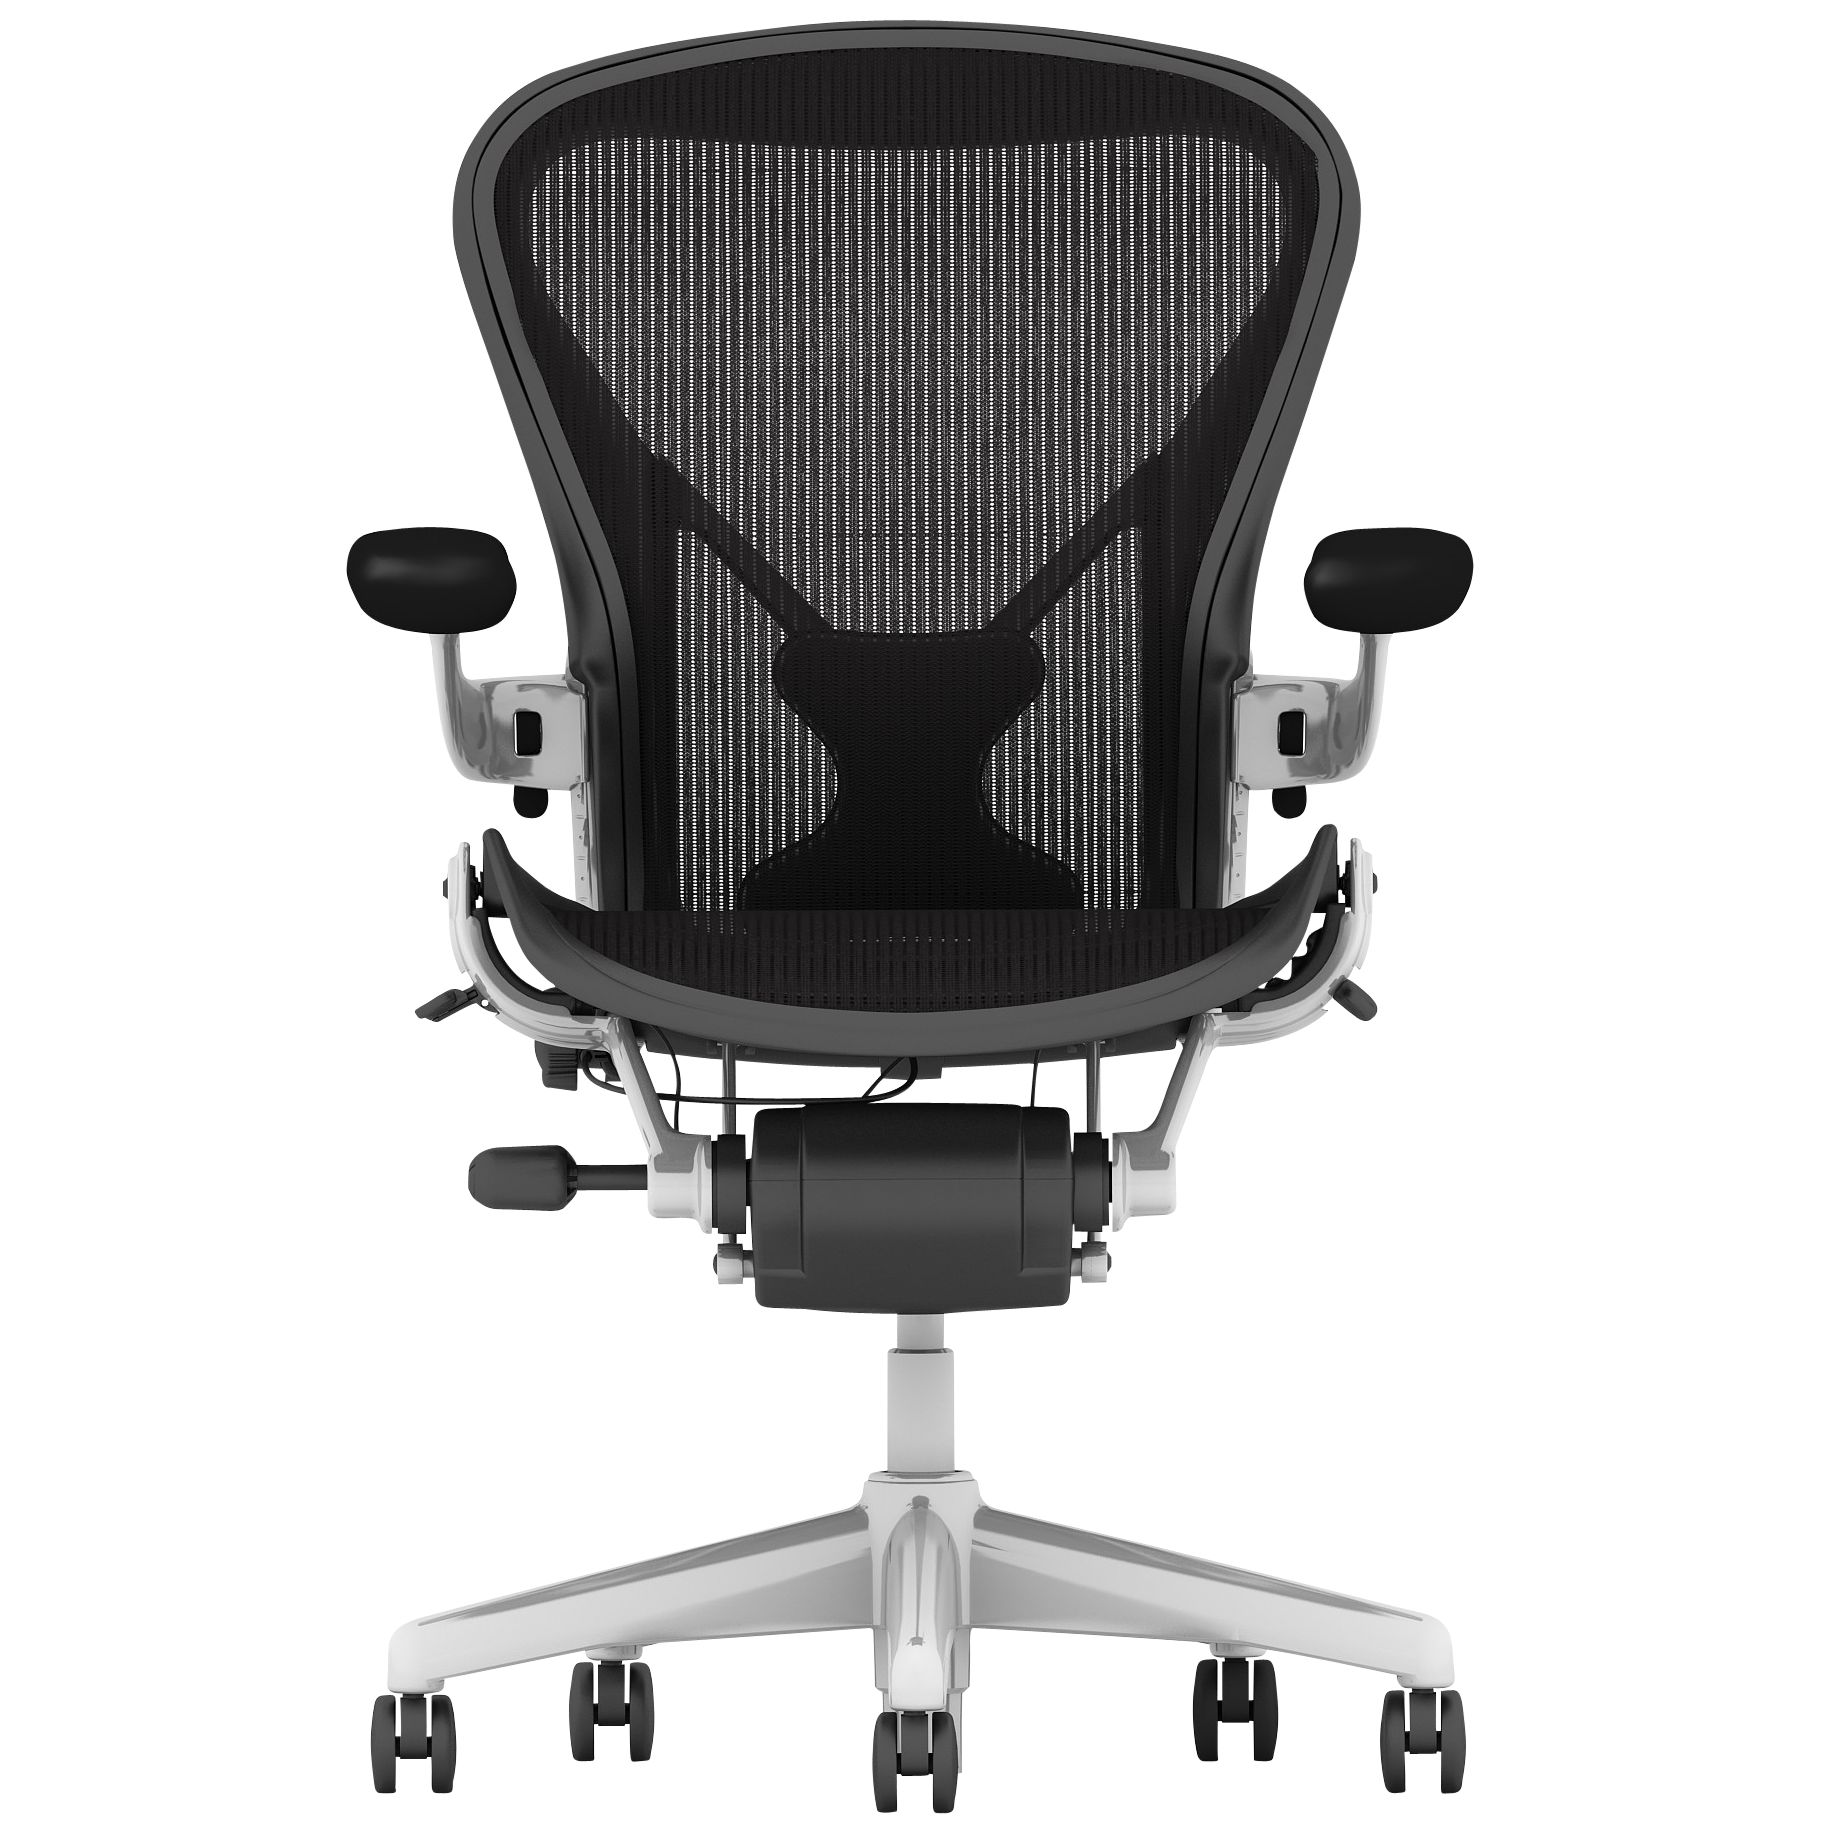 Herman Miller Aeron Office Chair Size C Review Compare Prices Buy Online